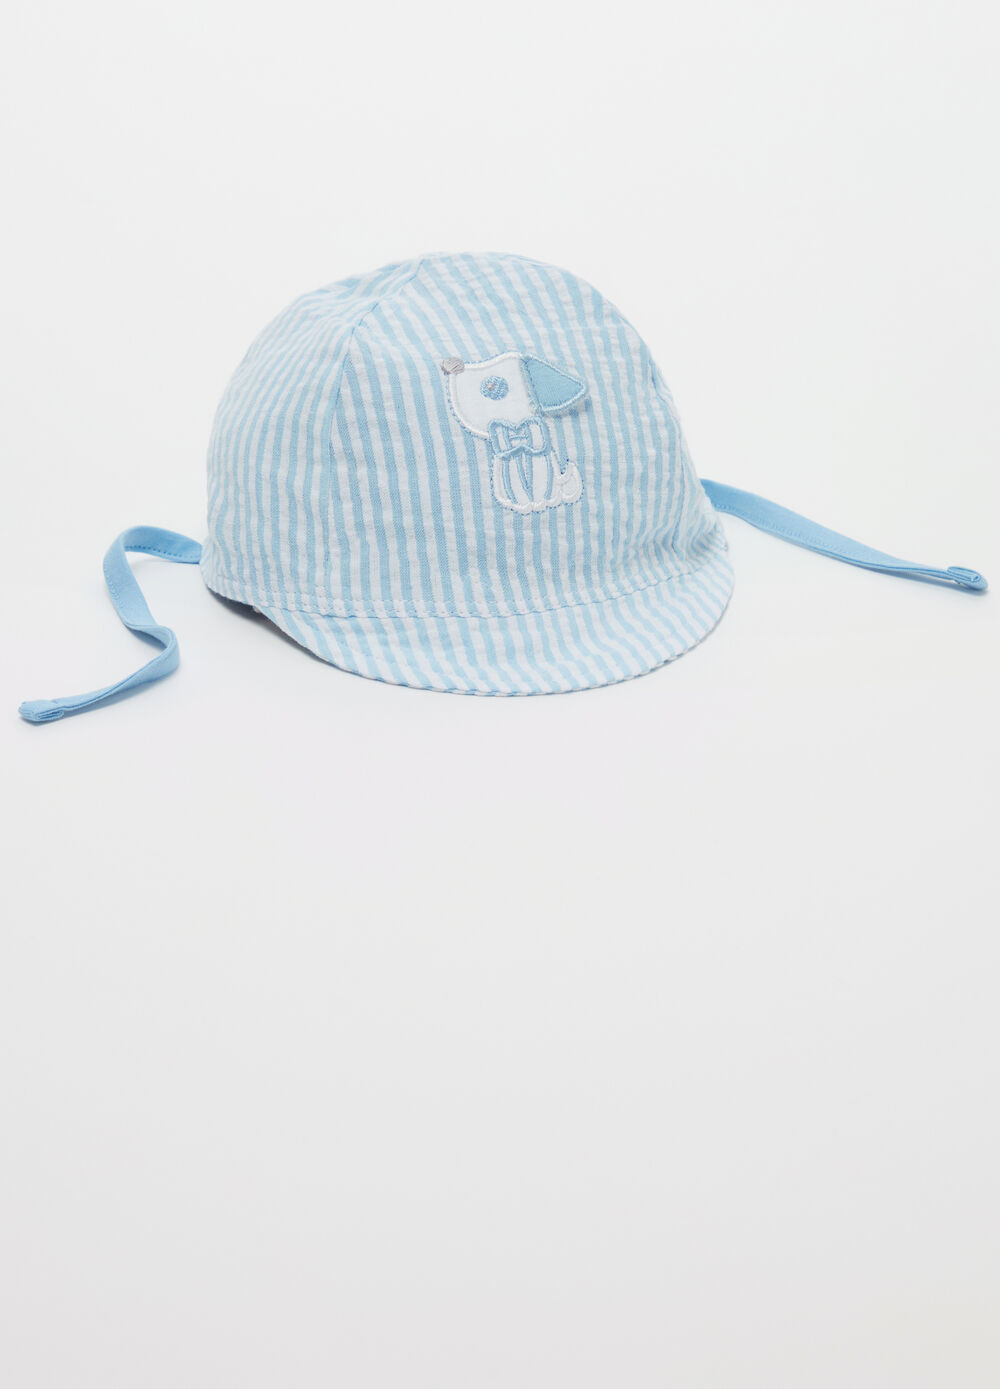 Striped patterned cotton hat